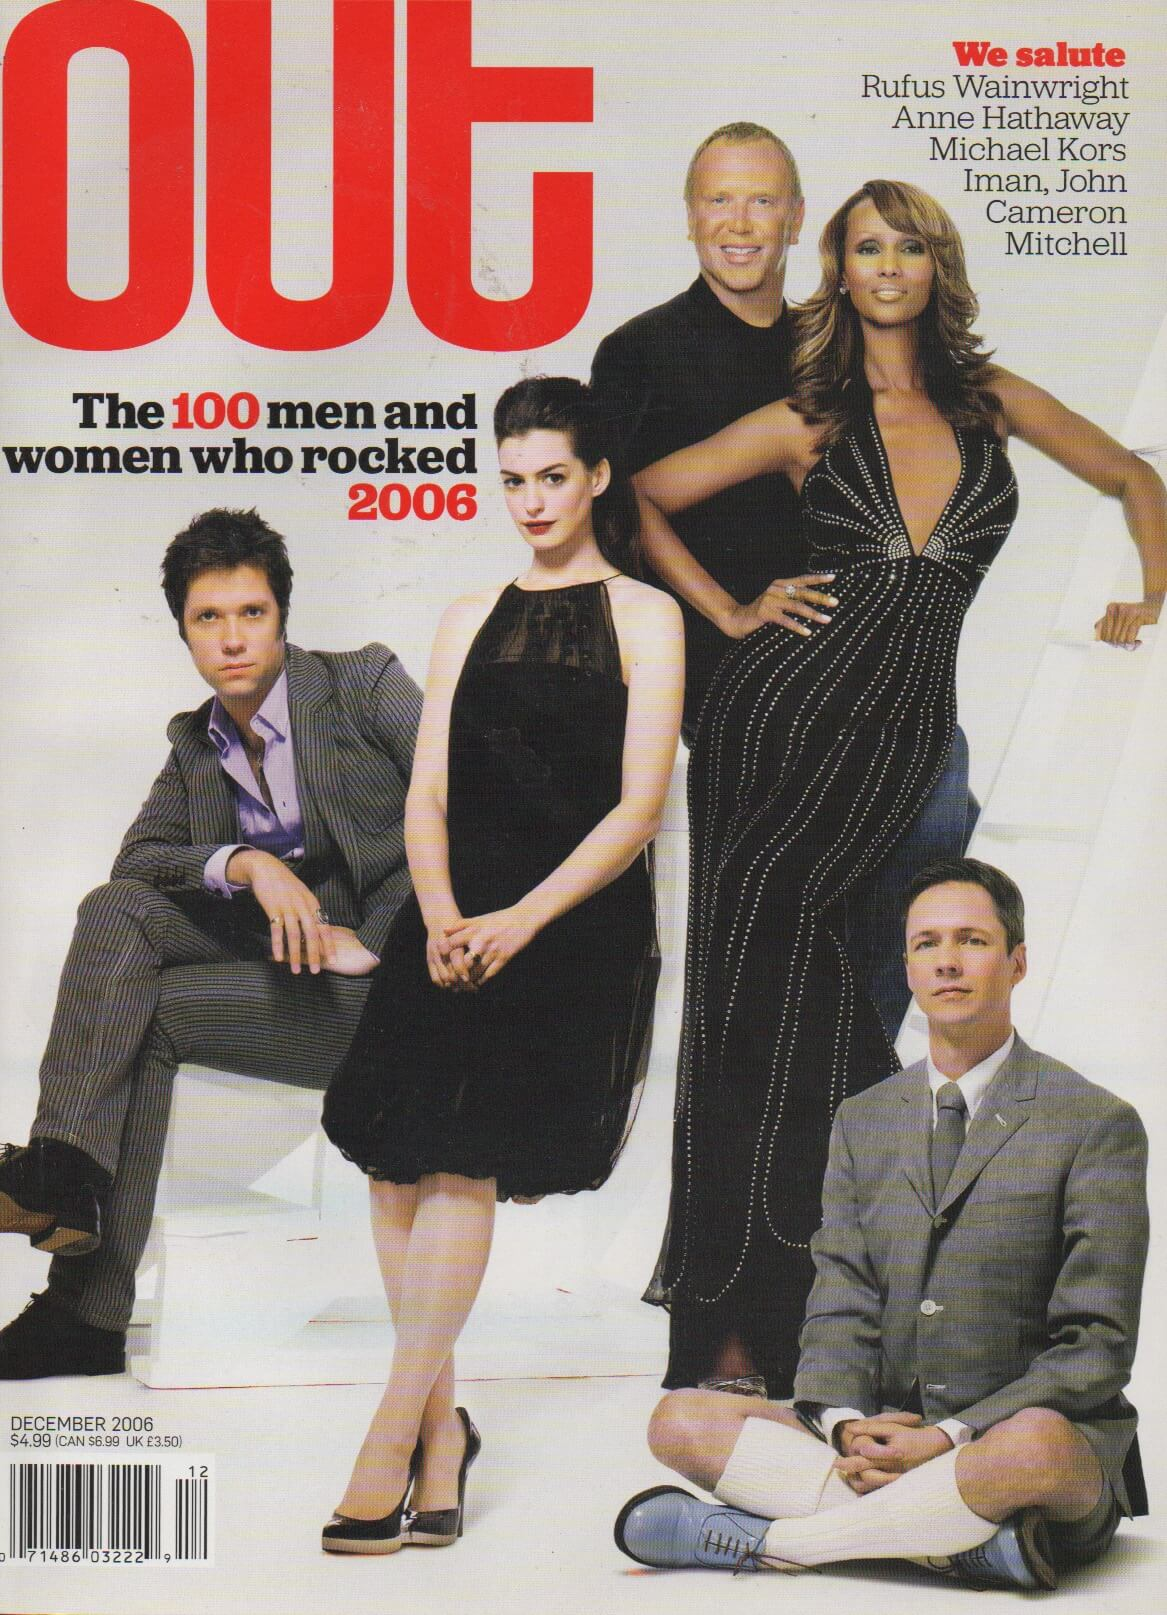 Out Magazine cover 2005 Hot List Issue (featuring Rufus Wainwright, Anne Hathaway, Michael Kors, Iman, and John Cameron MItchell)